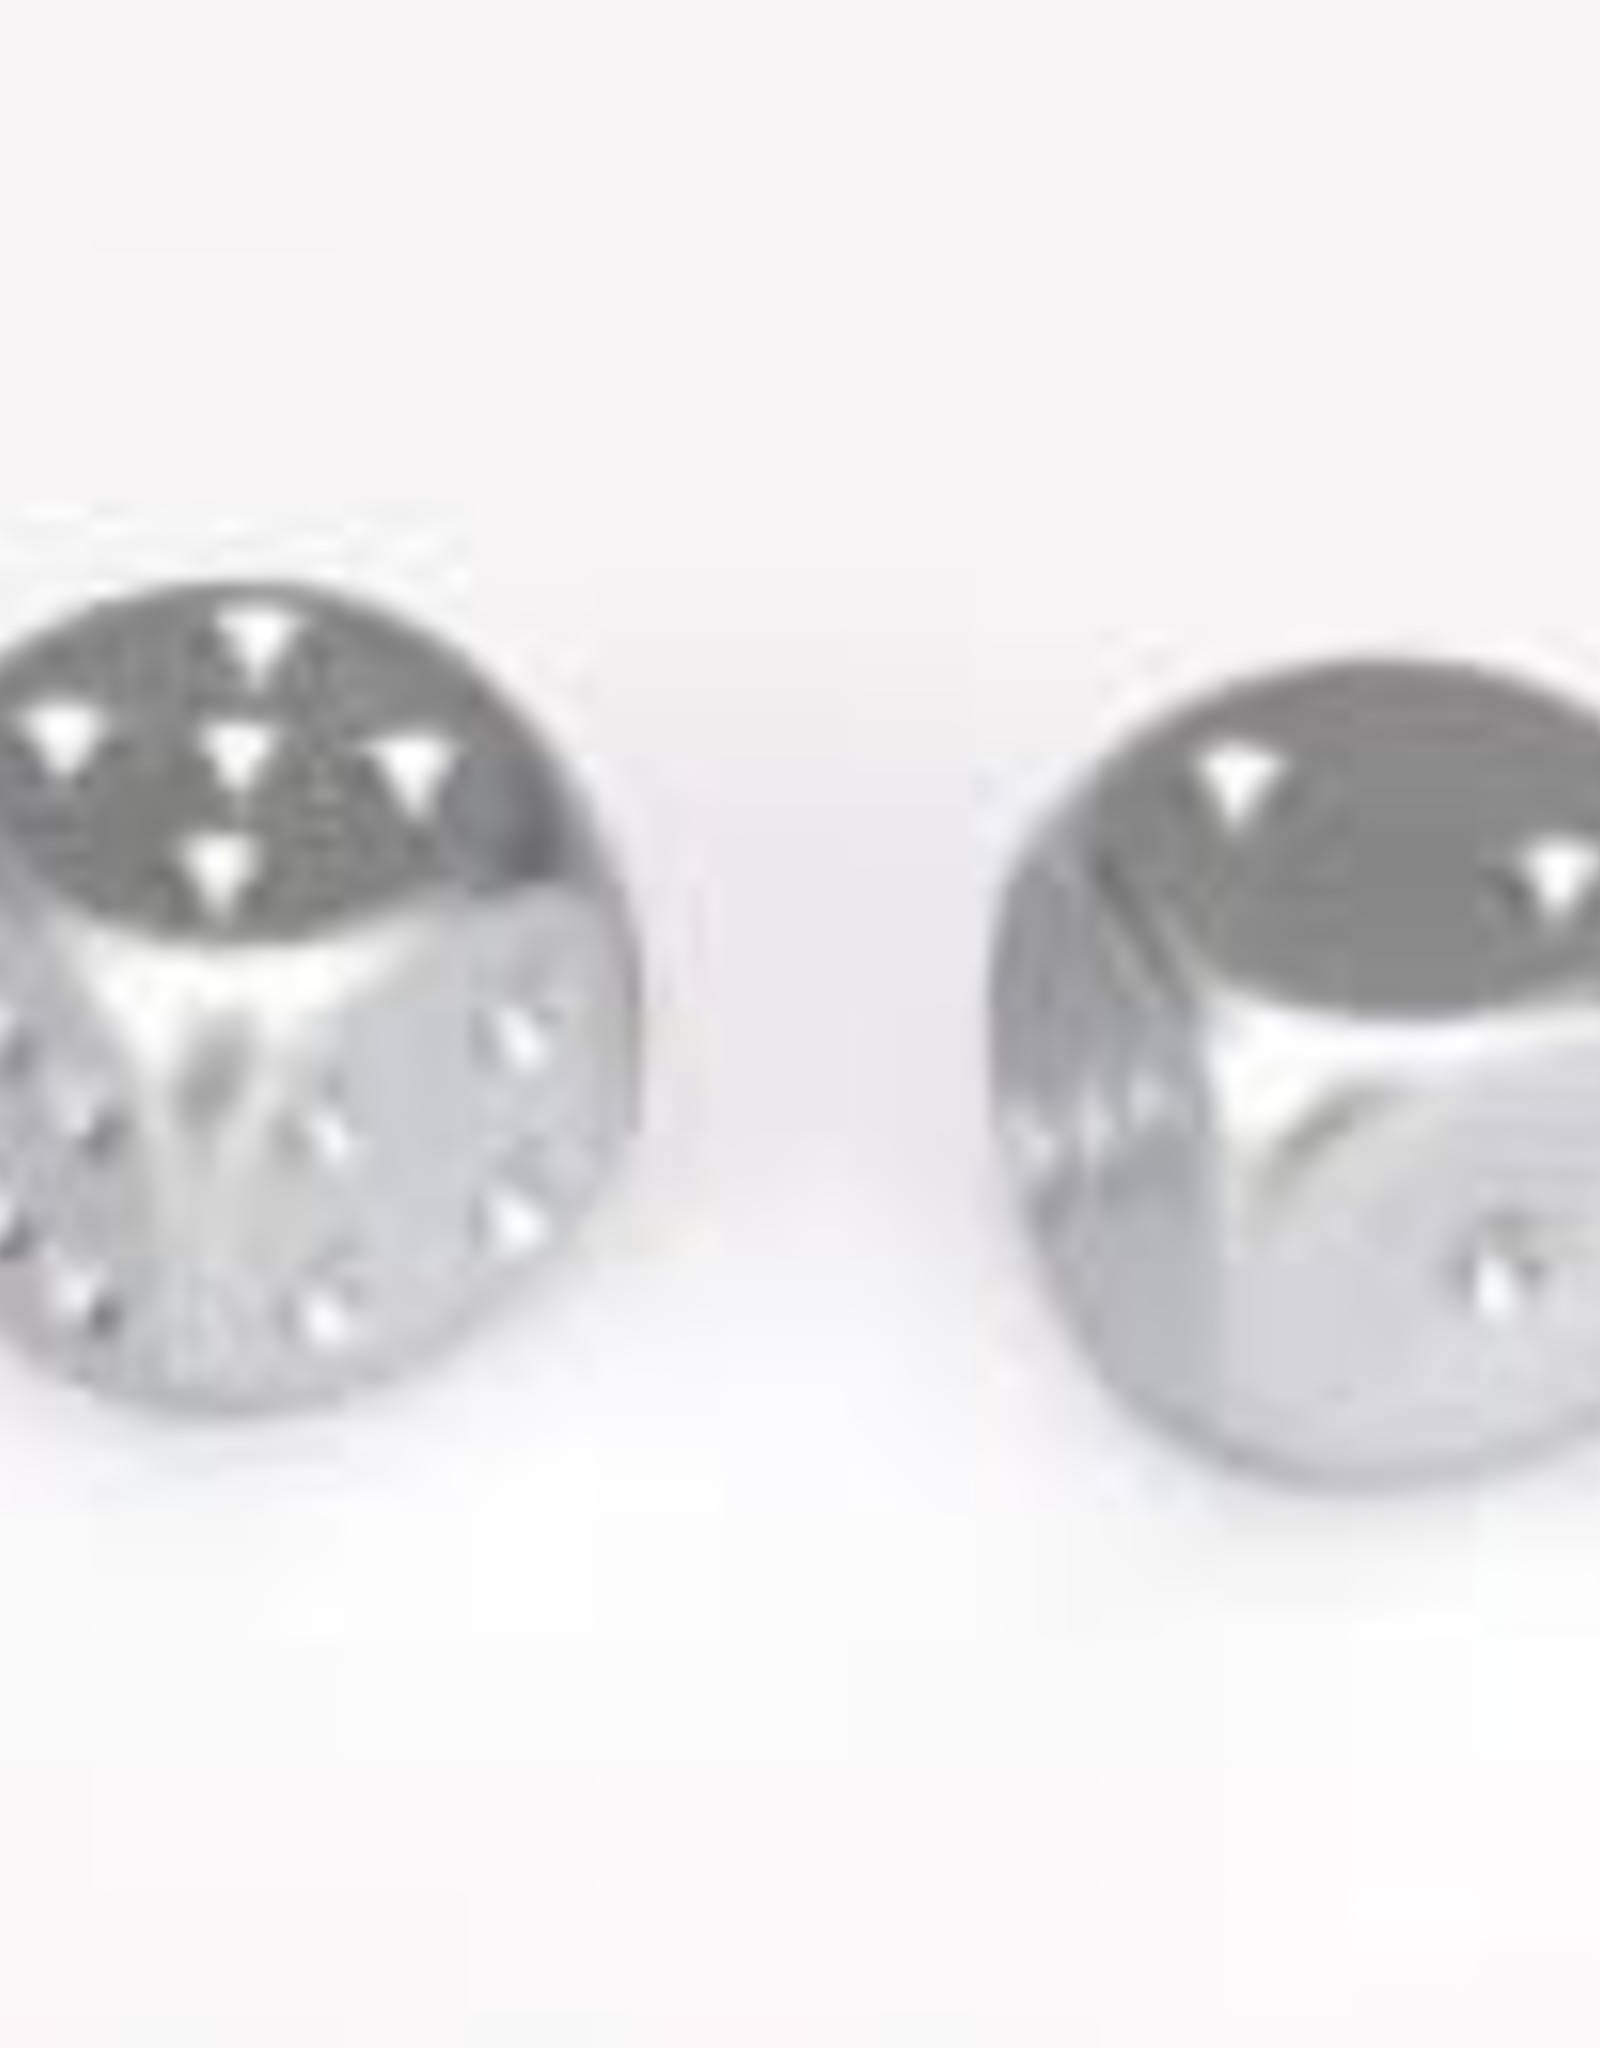 Chessex 2 Aluminum Plated 16mm d6